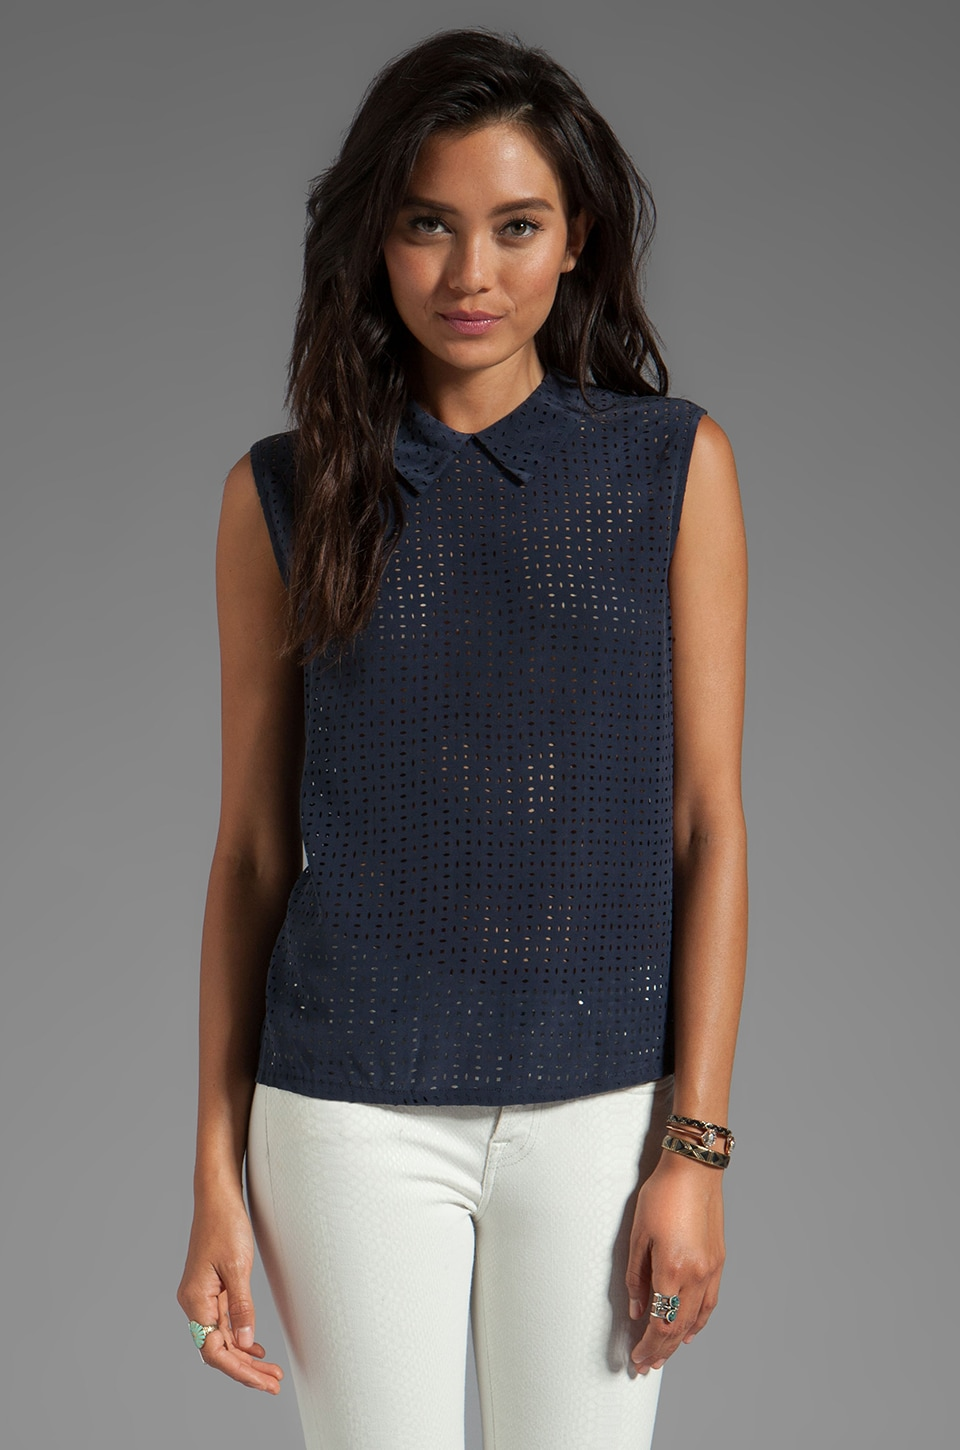 Equipment Laser Cut Elliott Sleeveless Top in Peacoat